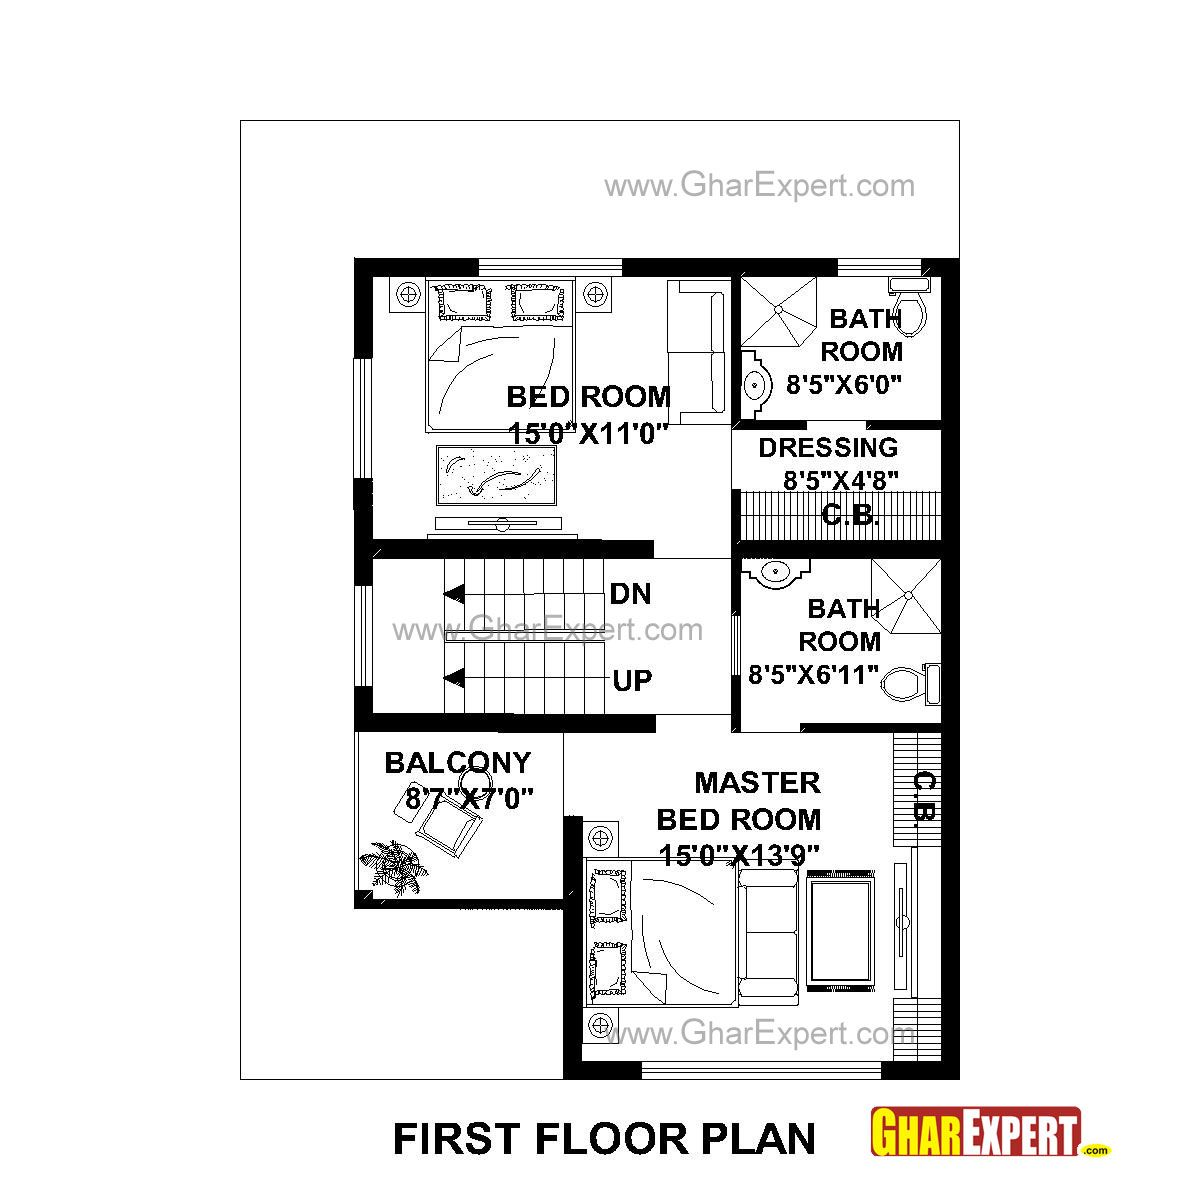 5 master bedroom house plans  Homely Idea  X  House Plans To Code    Plans  Designs